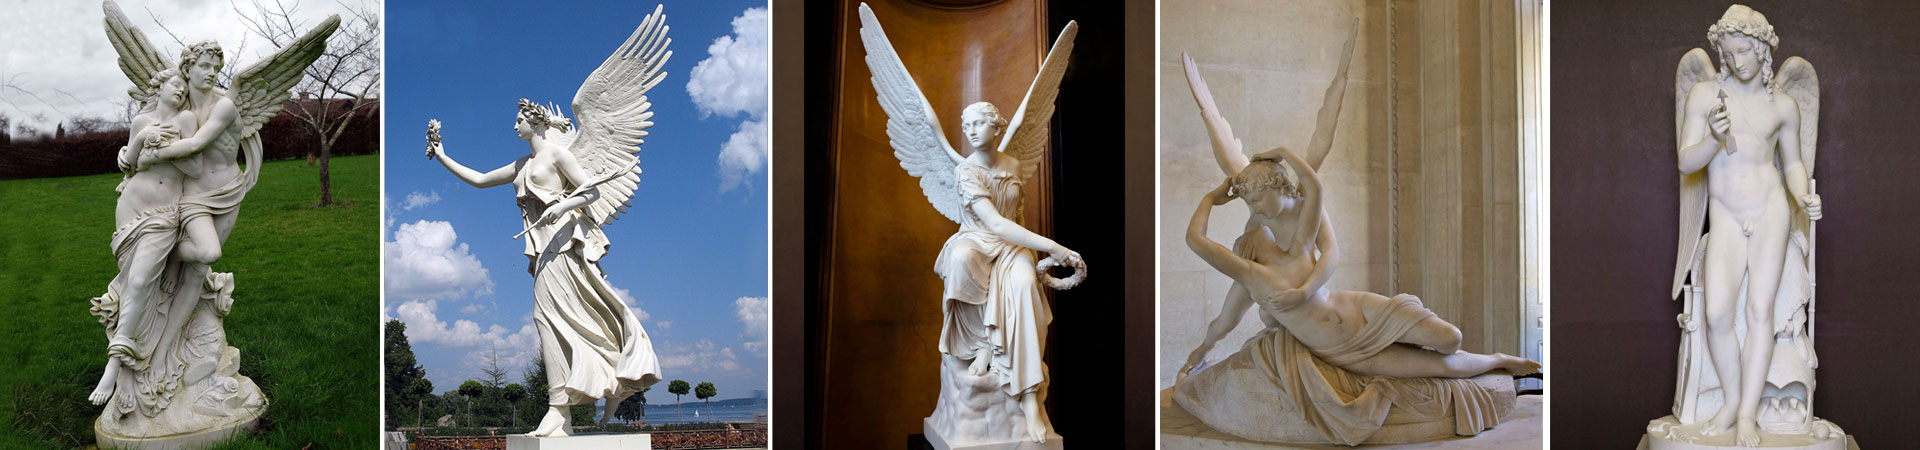 famous art sculpture designs